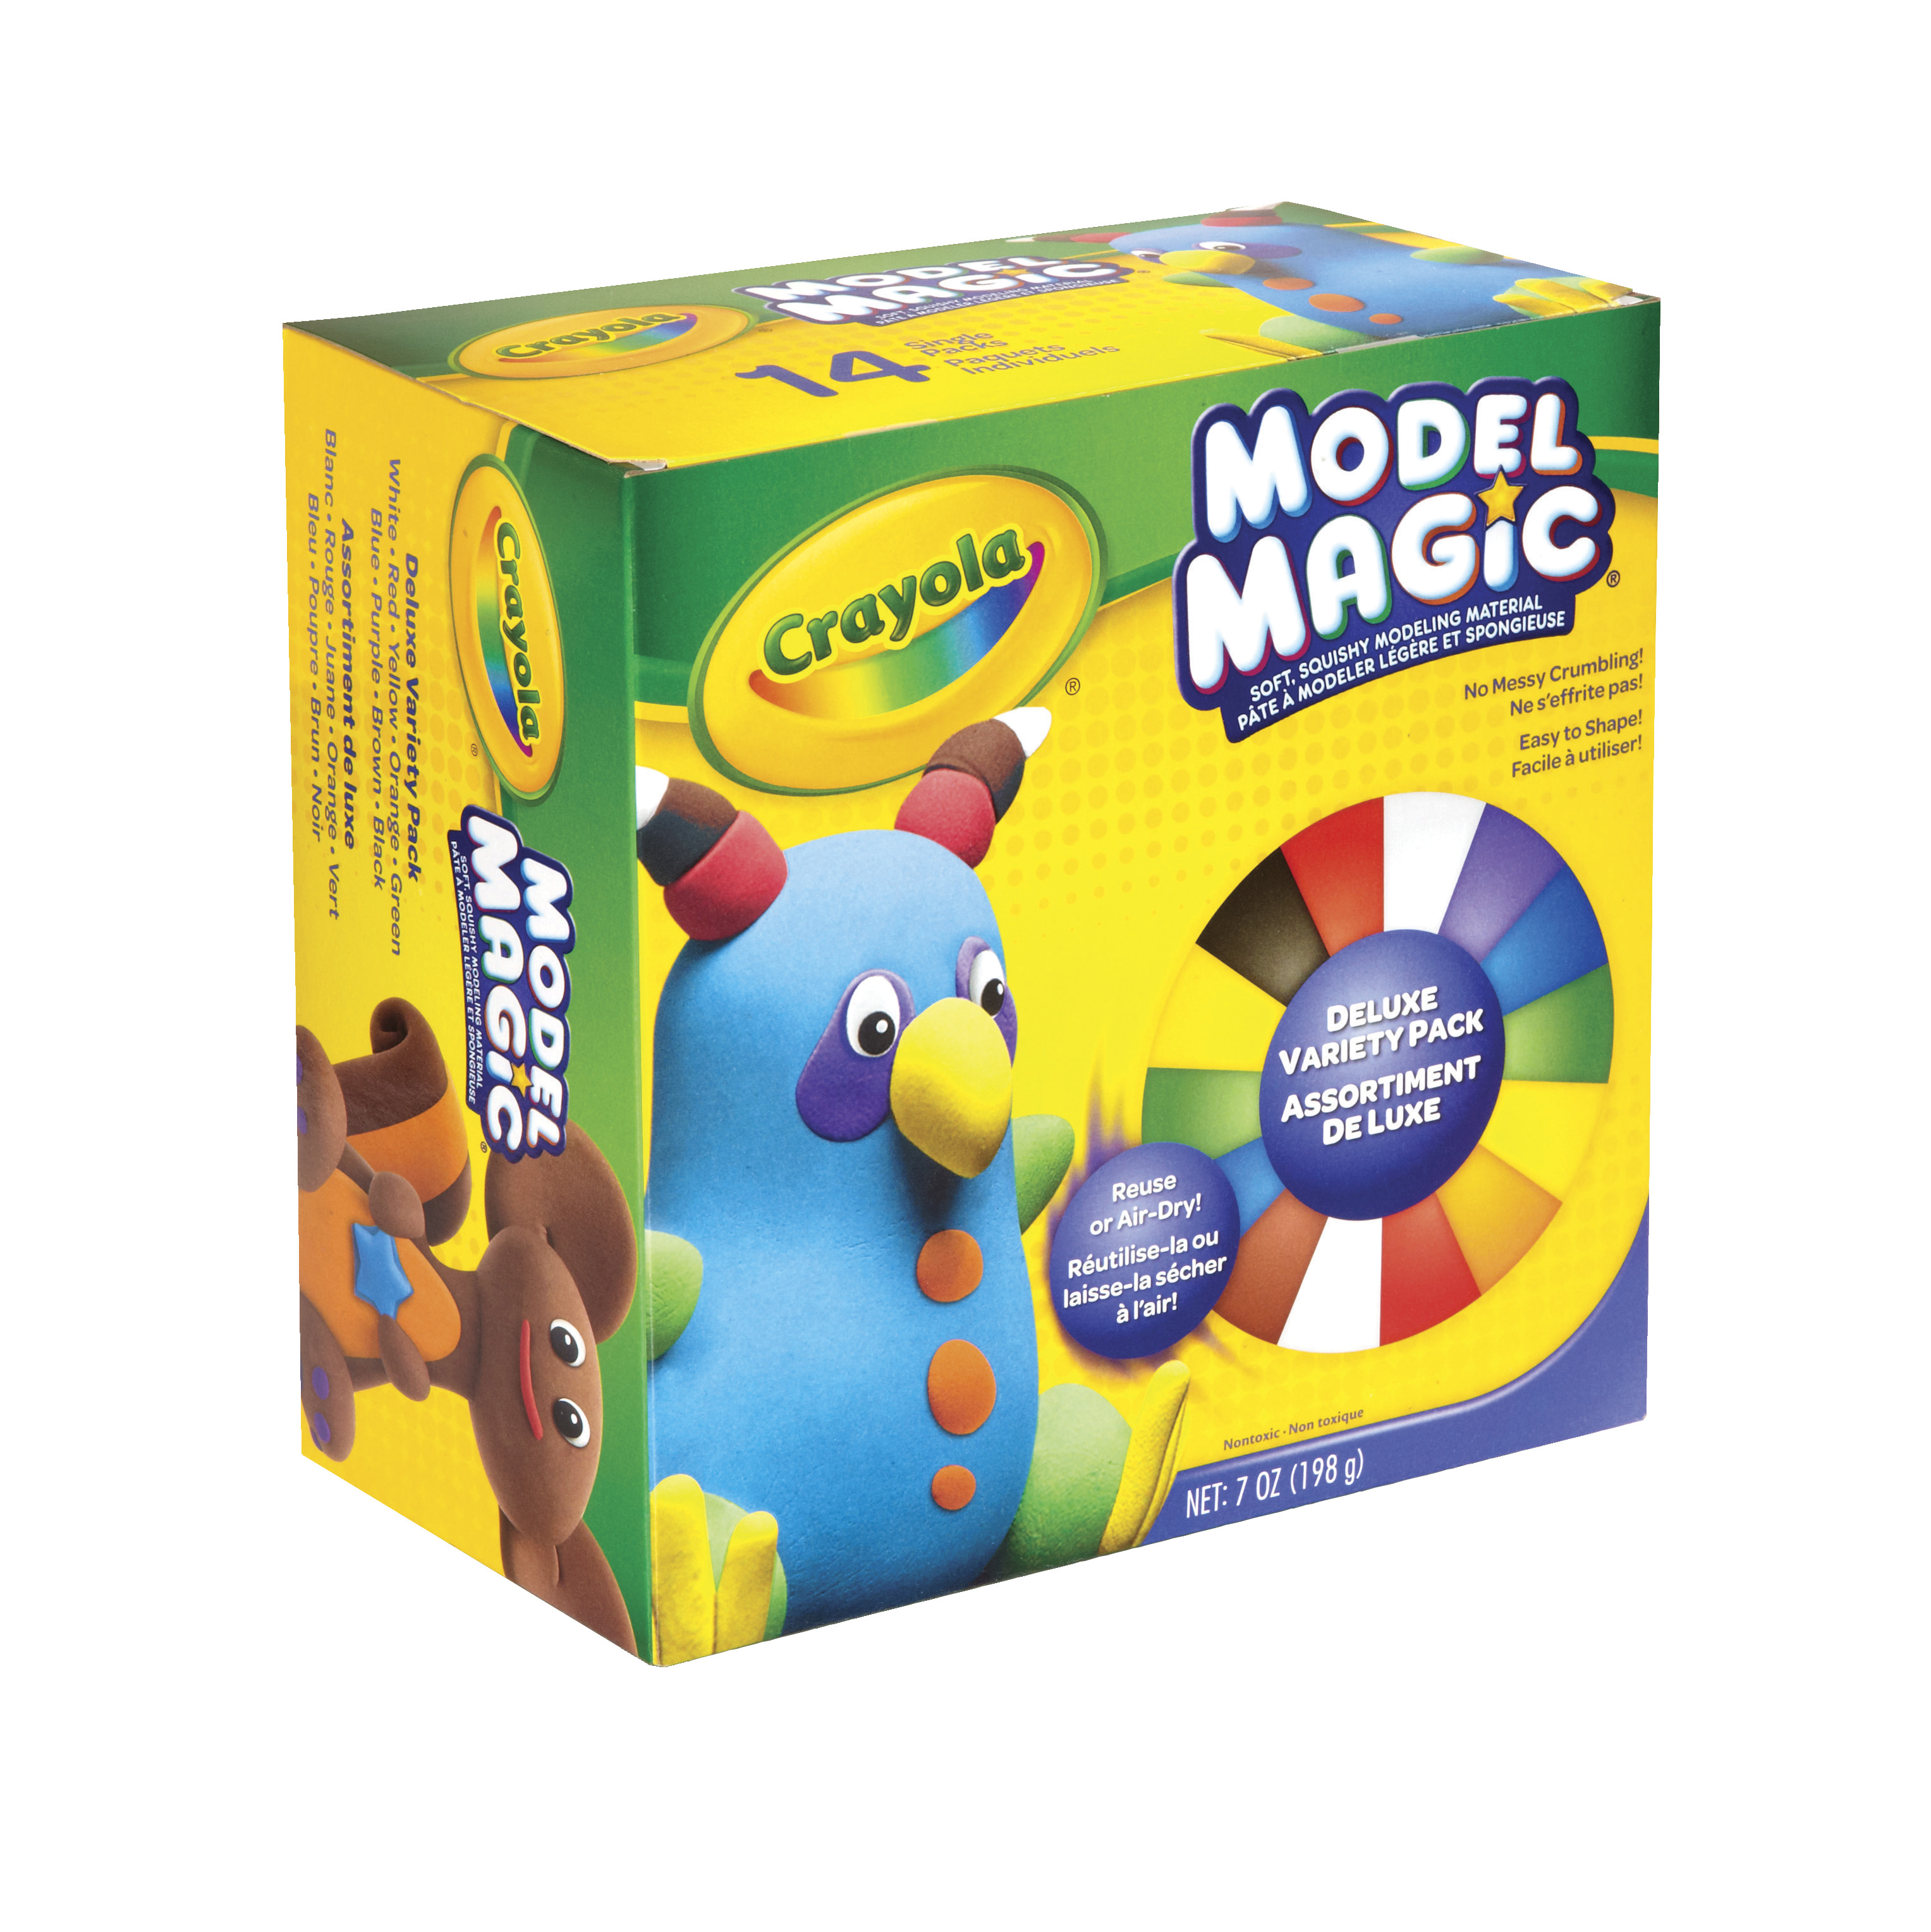 Crayola Model Magic Non-Toxic Modeling Dough Deluxe Variety Pack, 7 Oz, Assorted Color